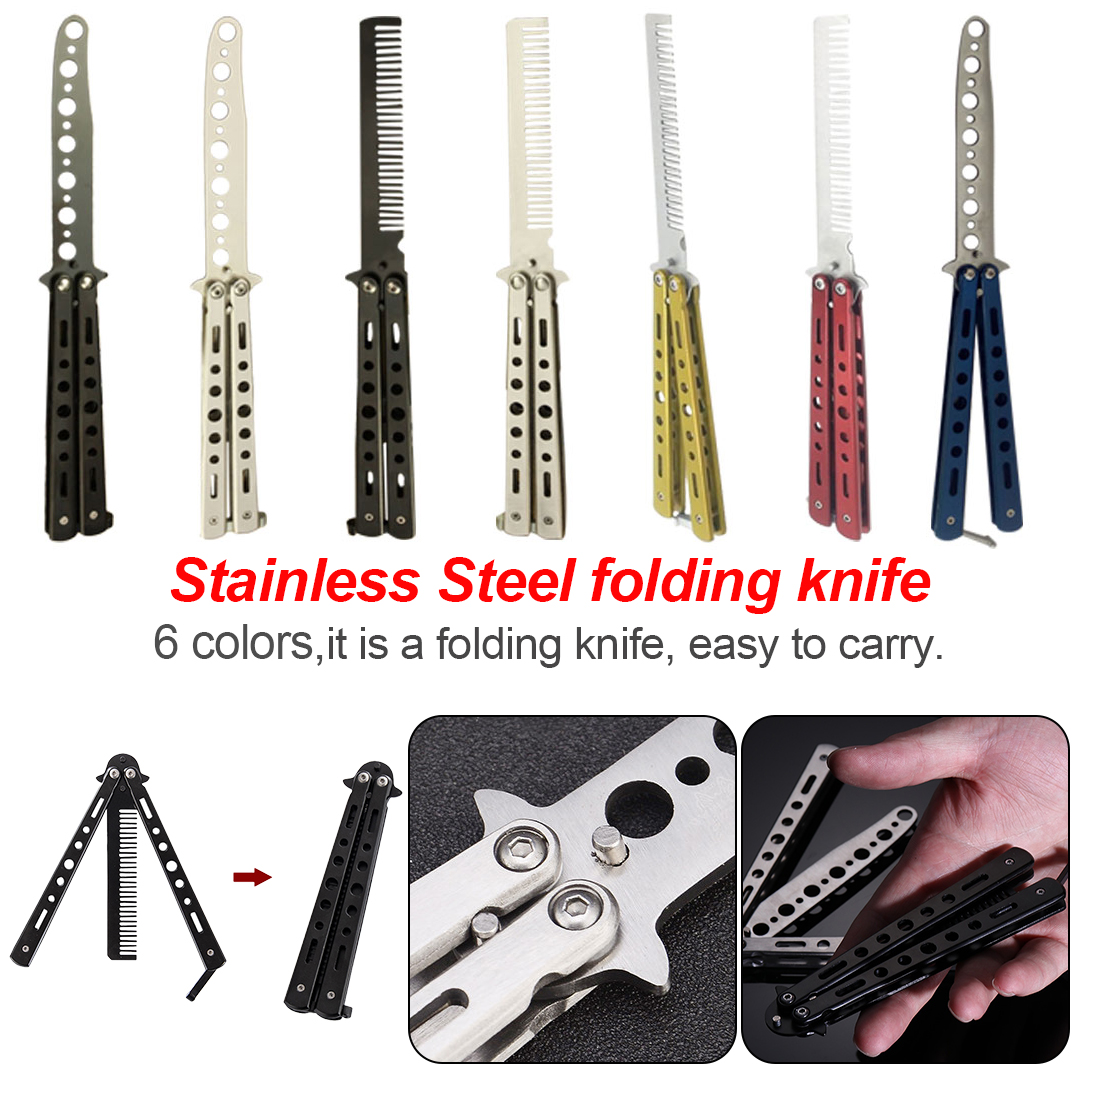 Portable Skull Printing Folding Training Camping Tools Safe Durable Practice Tool No Edge Blade with Hole,Grey